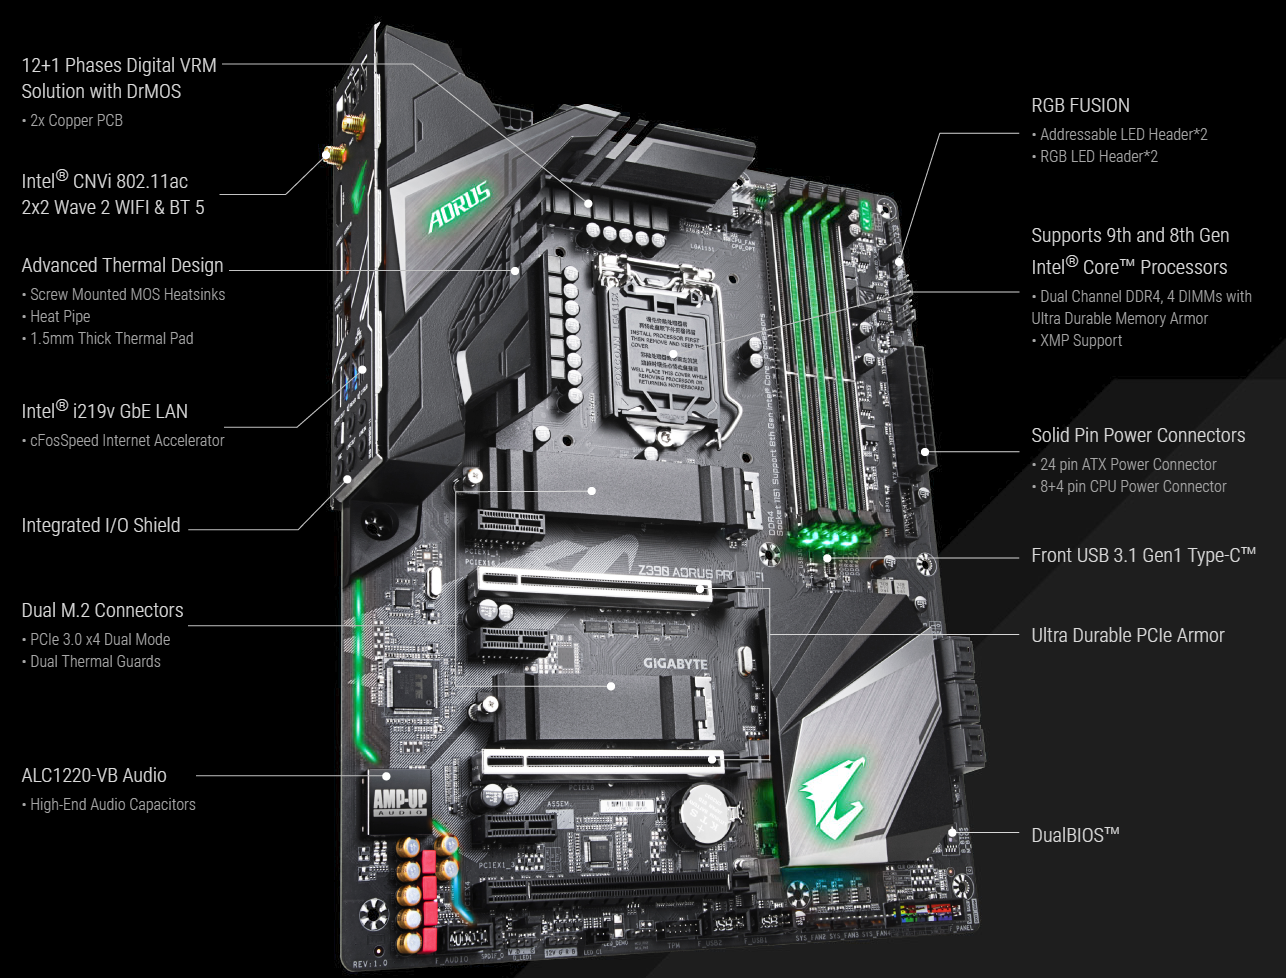 Buy the Gigabyte Z390 AORUS PRO WIFI ATX Form Factor, For